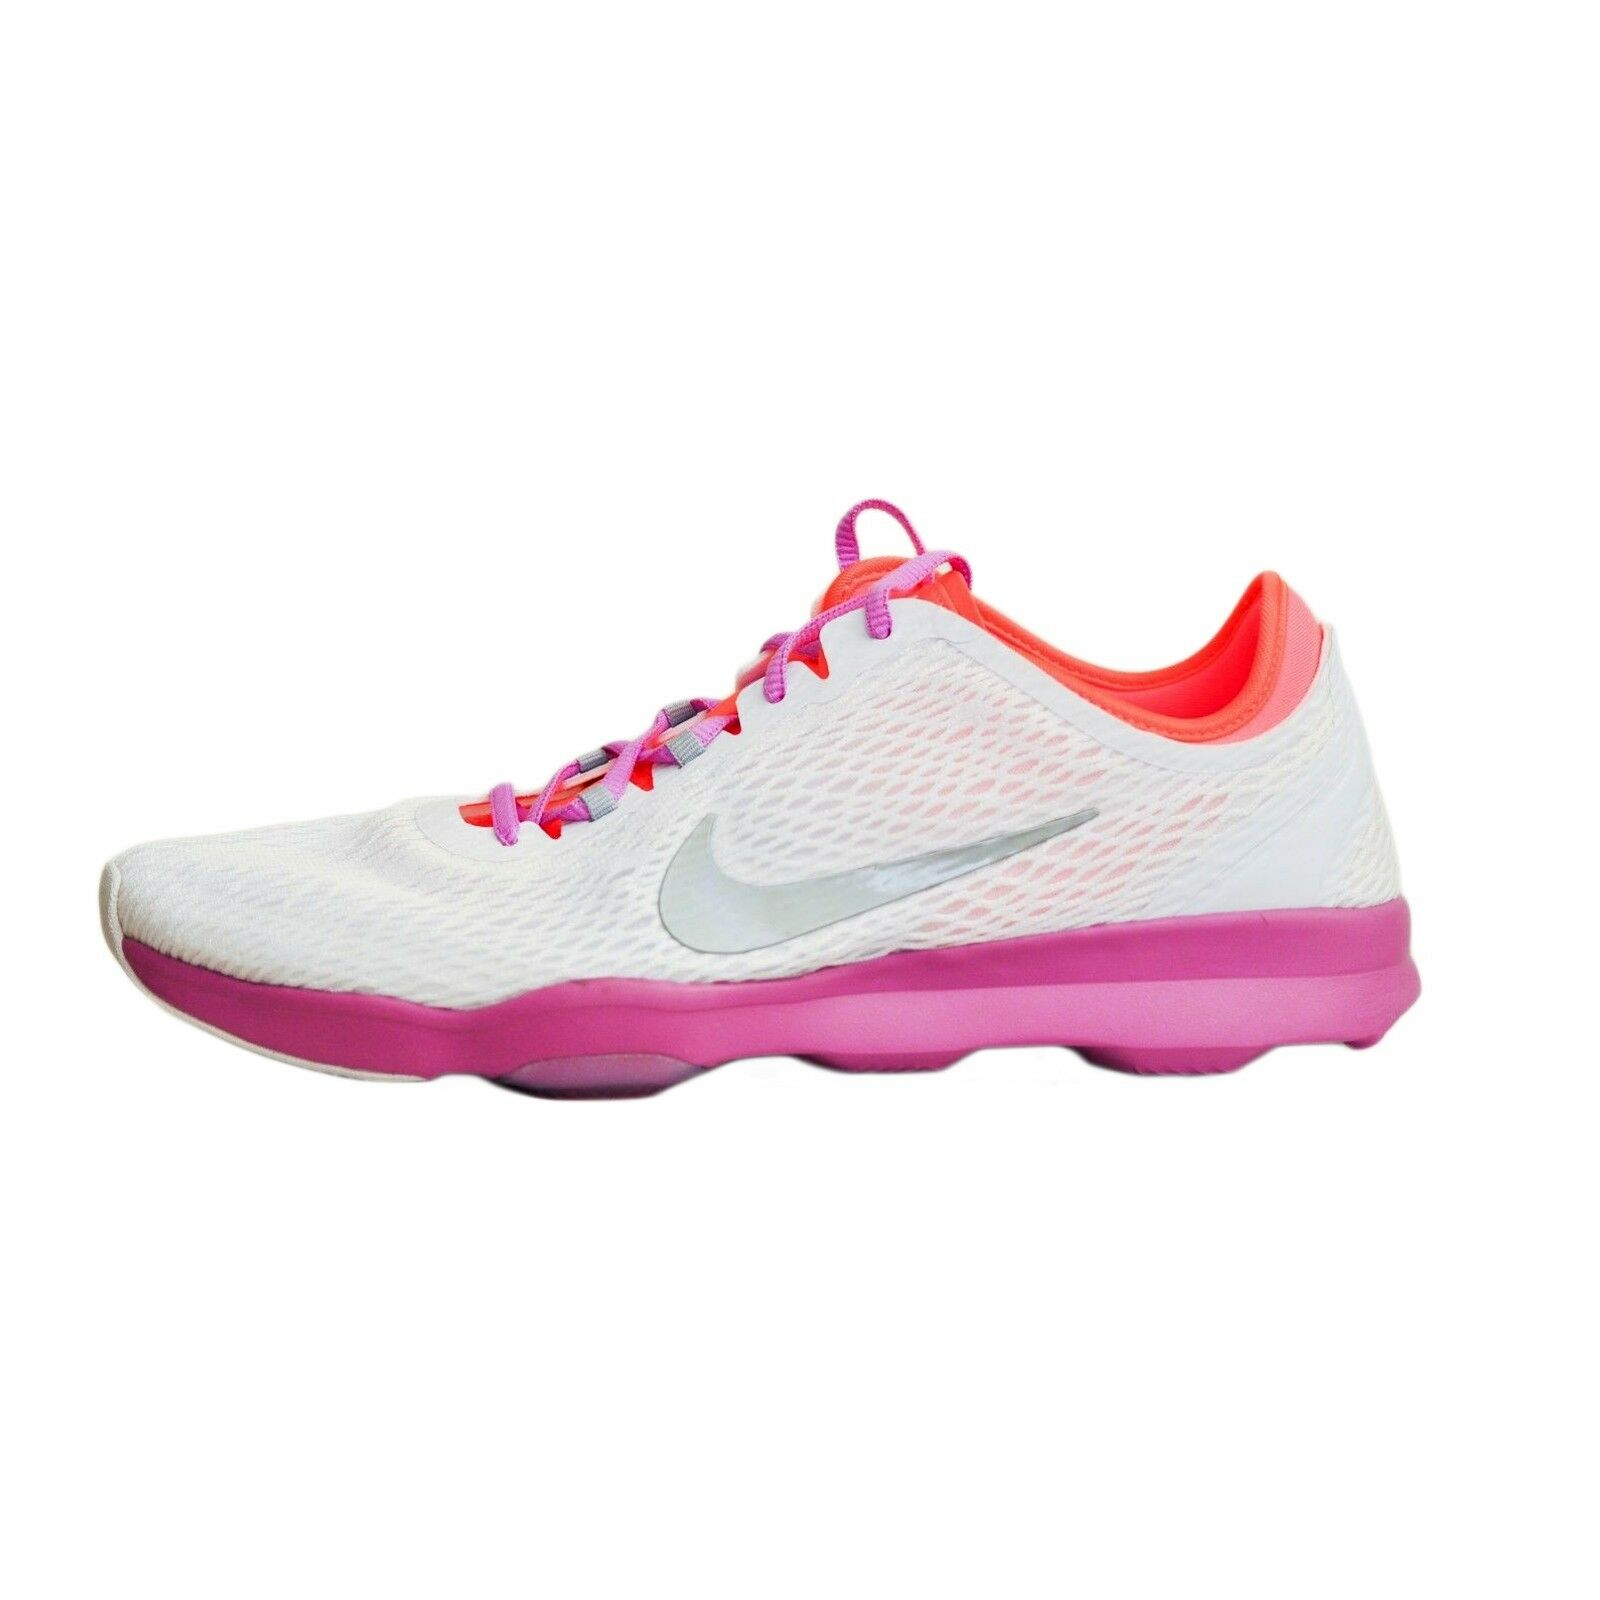 82c6aa8b7289 Nike Zoom Fit Fit Fit Training Sneakers Women s size 9.5 B NEW White  Fuchsia Hot Lava